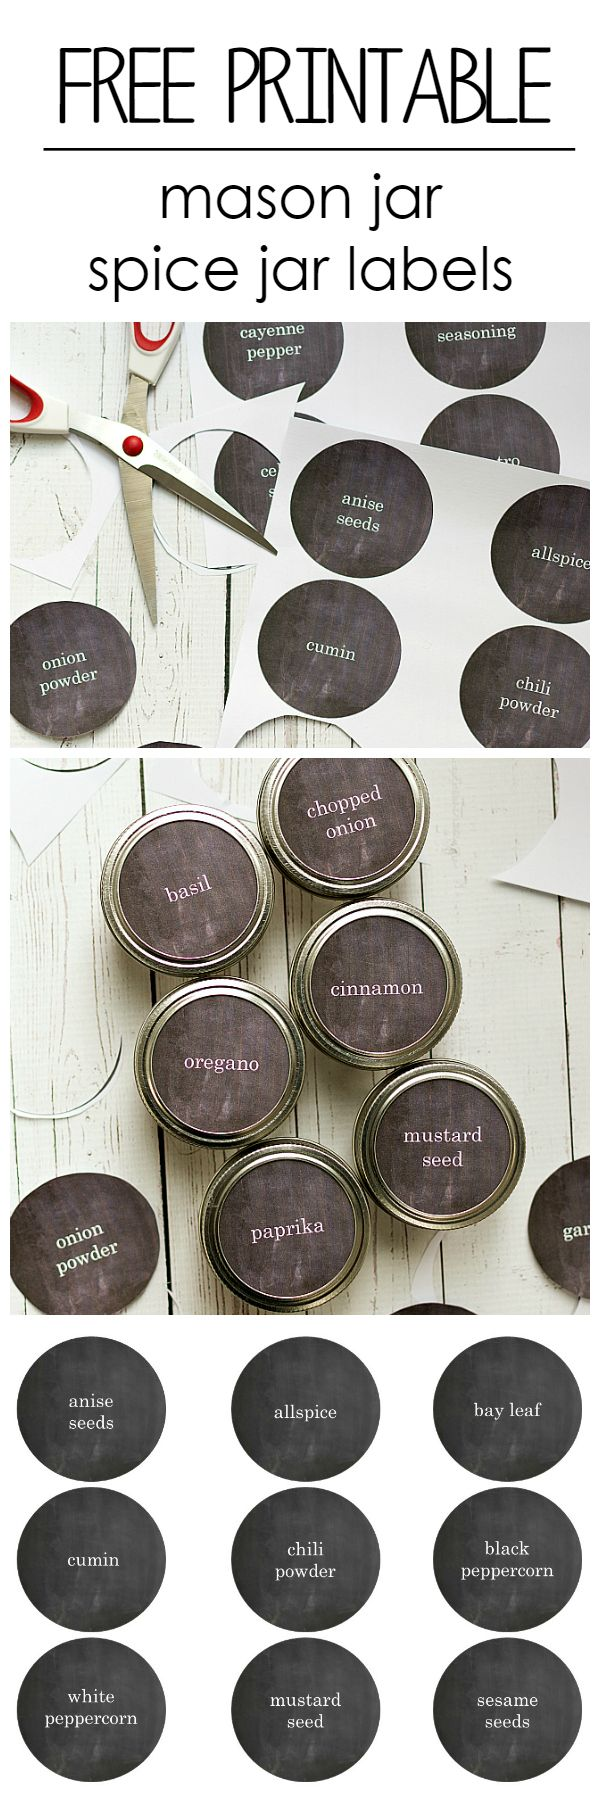 Mason Jar Craft Ideas: Spice Drawer Organization and Free Printable Labels